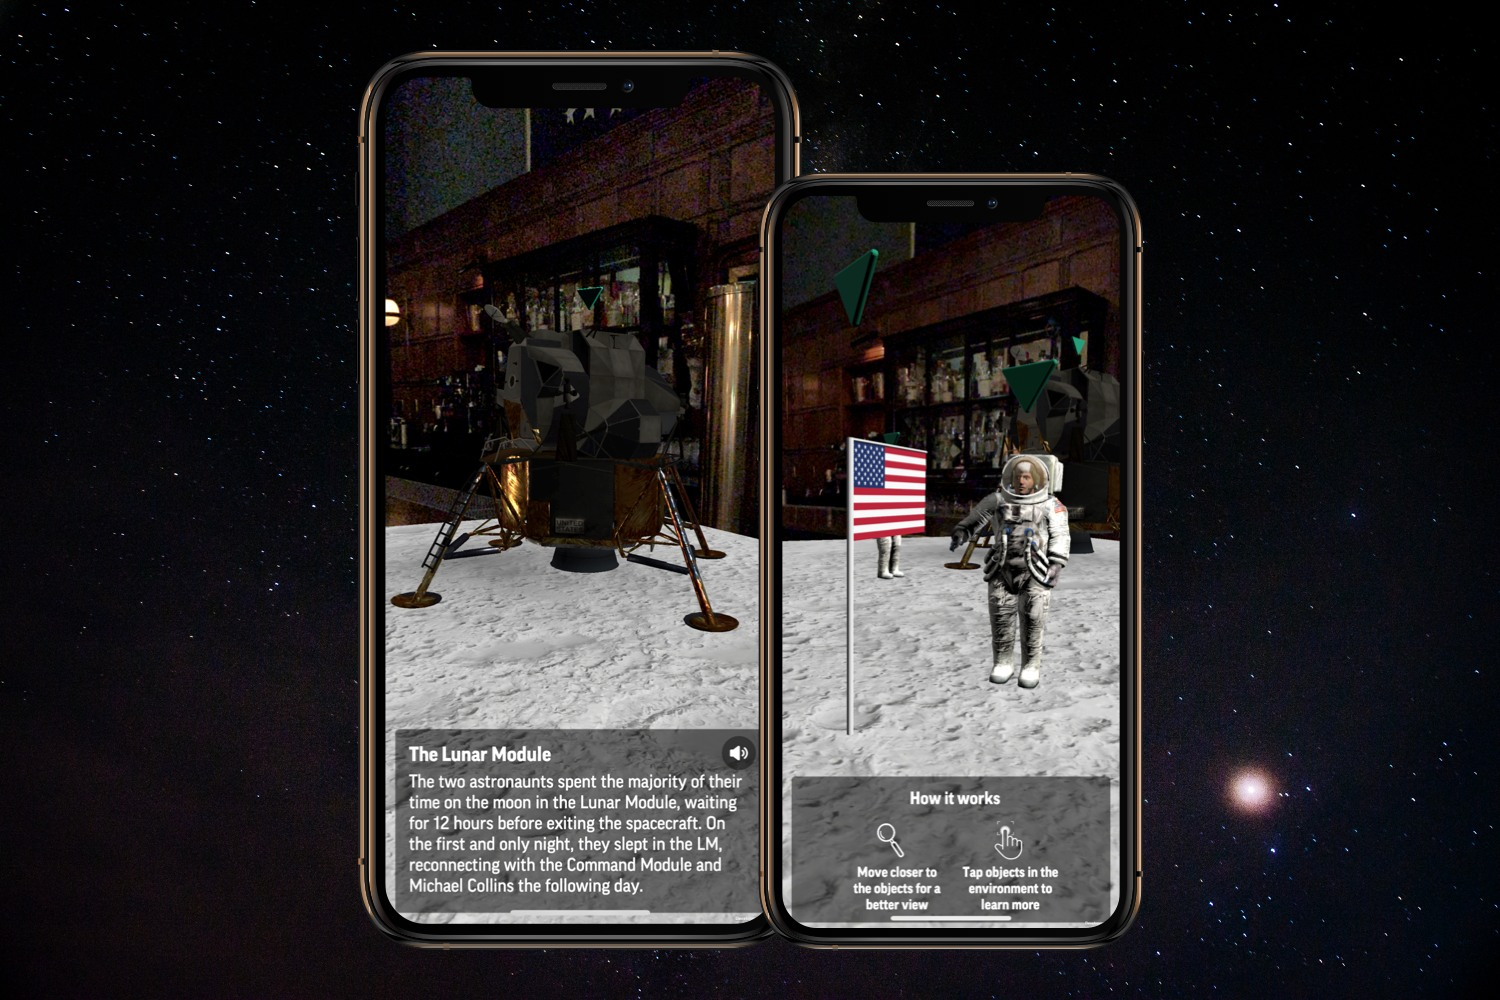 Associated Press: AR First Steps on the Moon